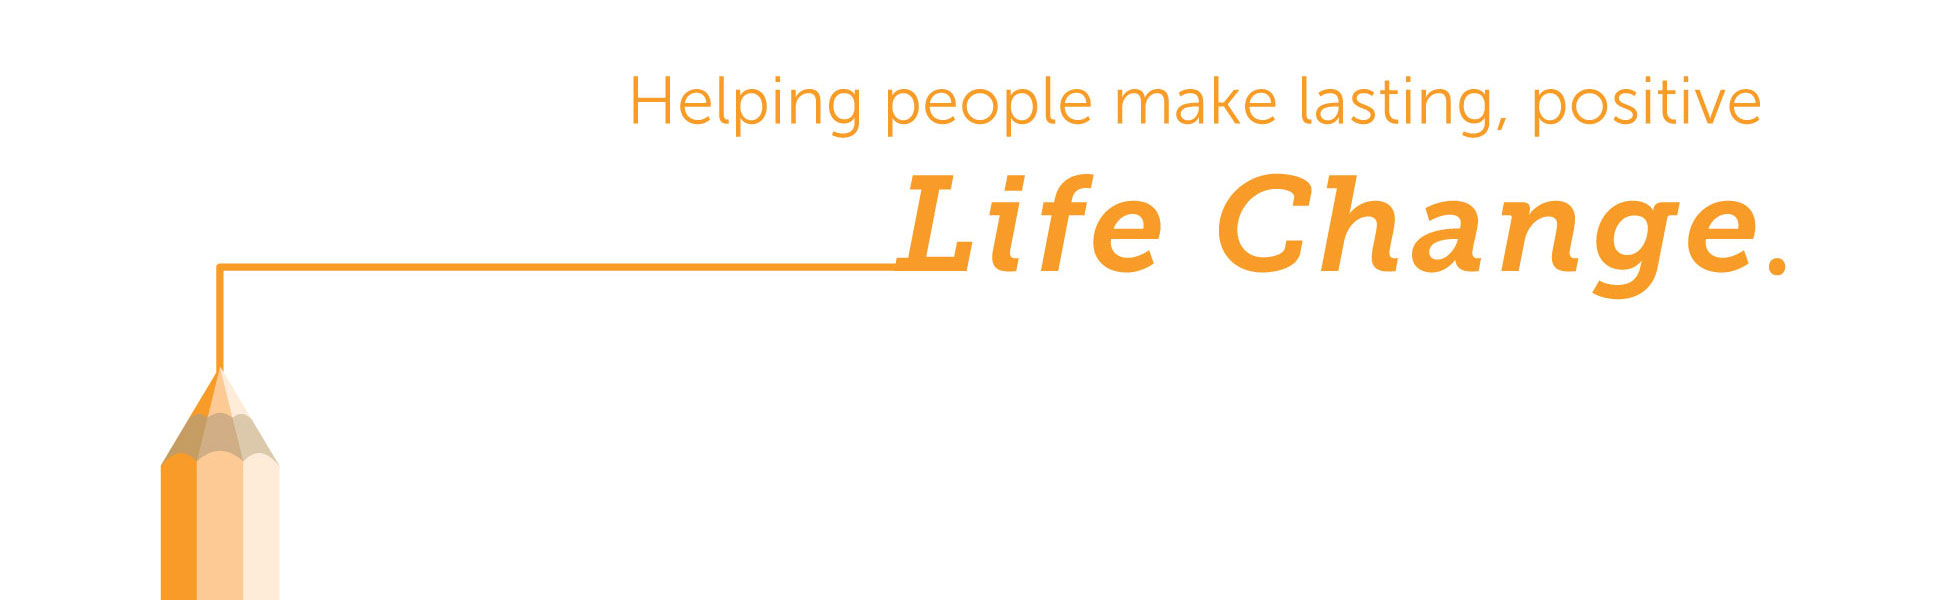 Helping people make lasting, positive life change